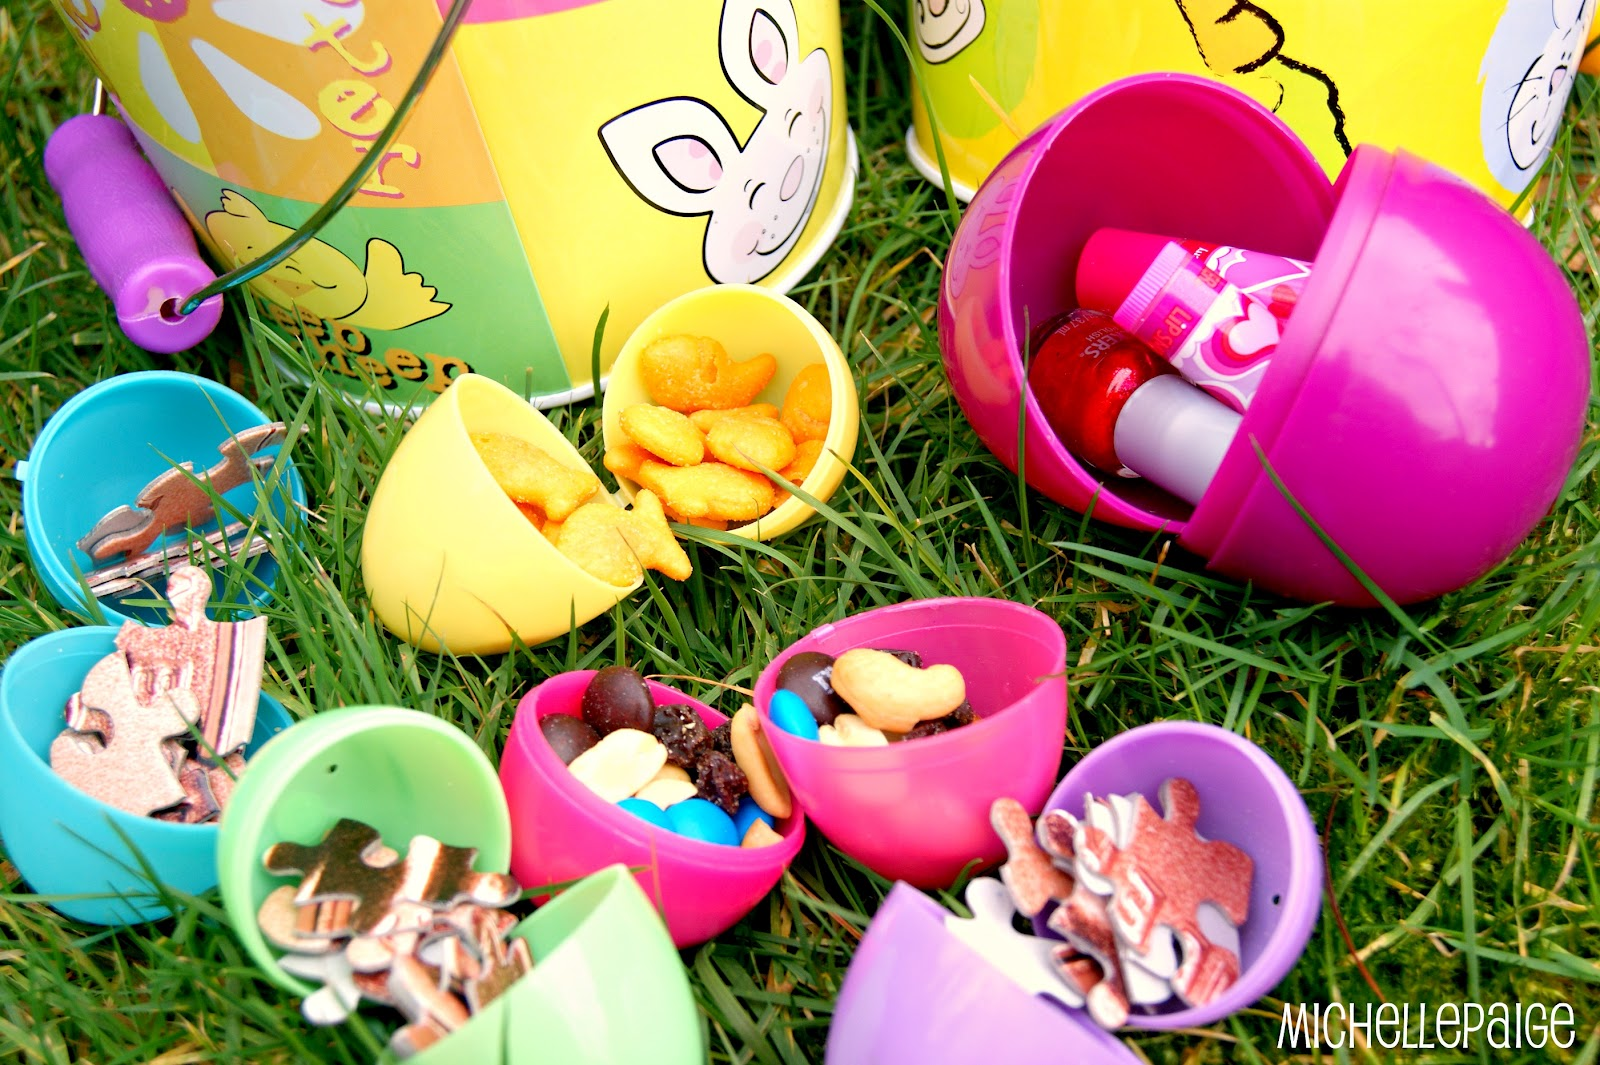 michelle paige blogs: 10 non-candy egg fillers